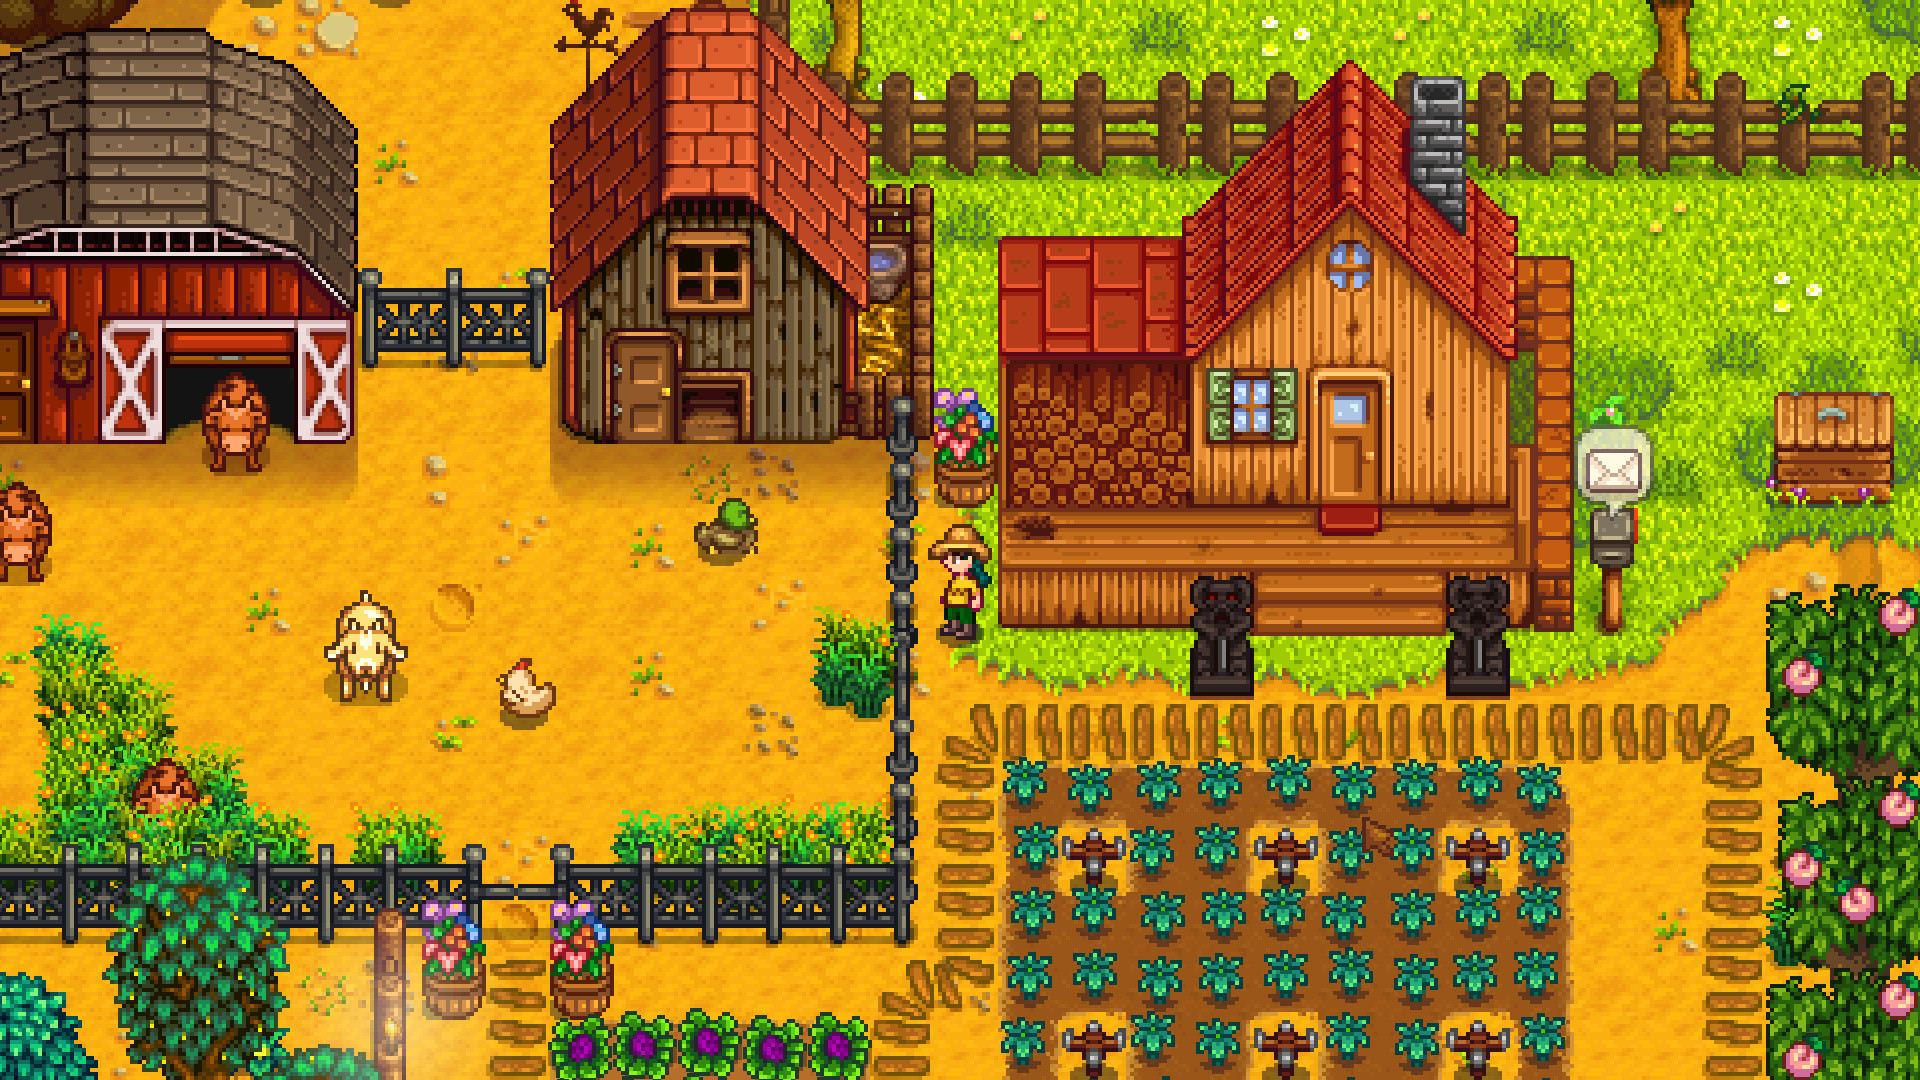 Stardew Valley's Multiplayer Update Releasing Next Month